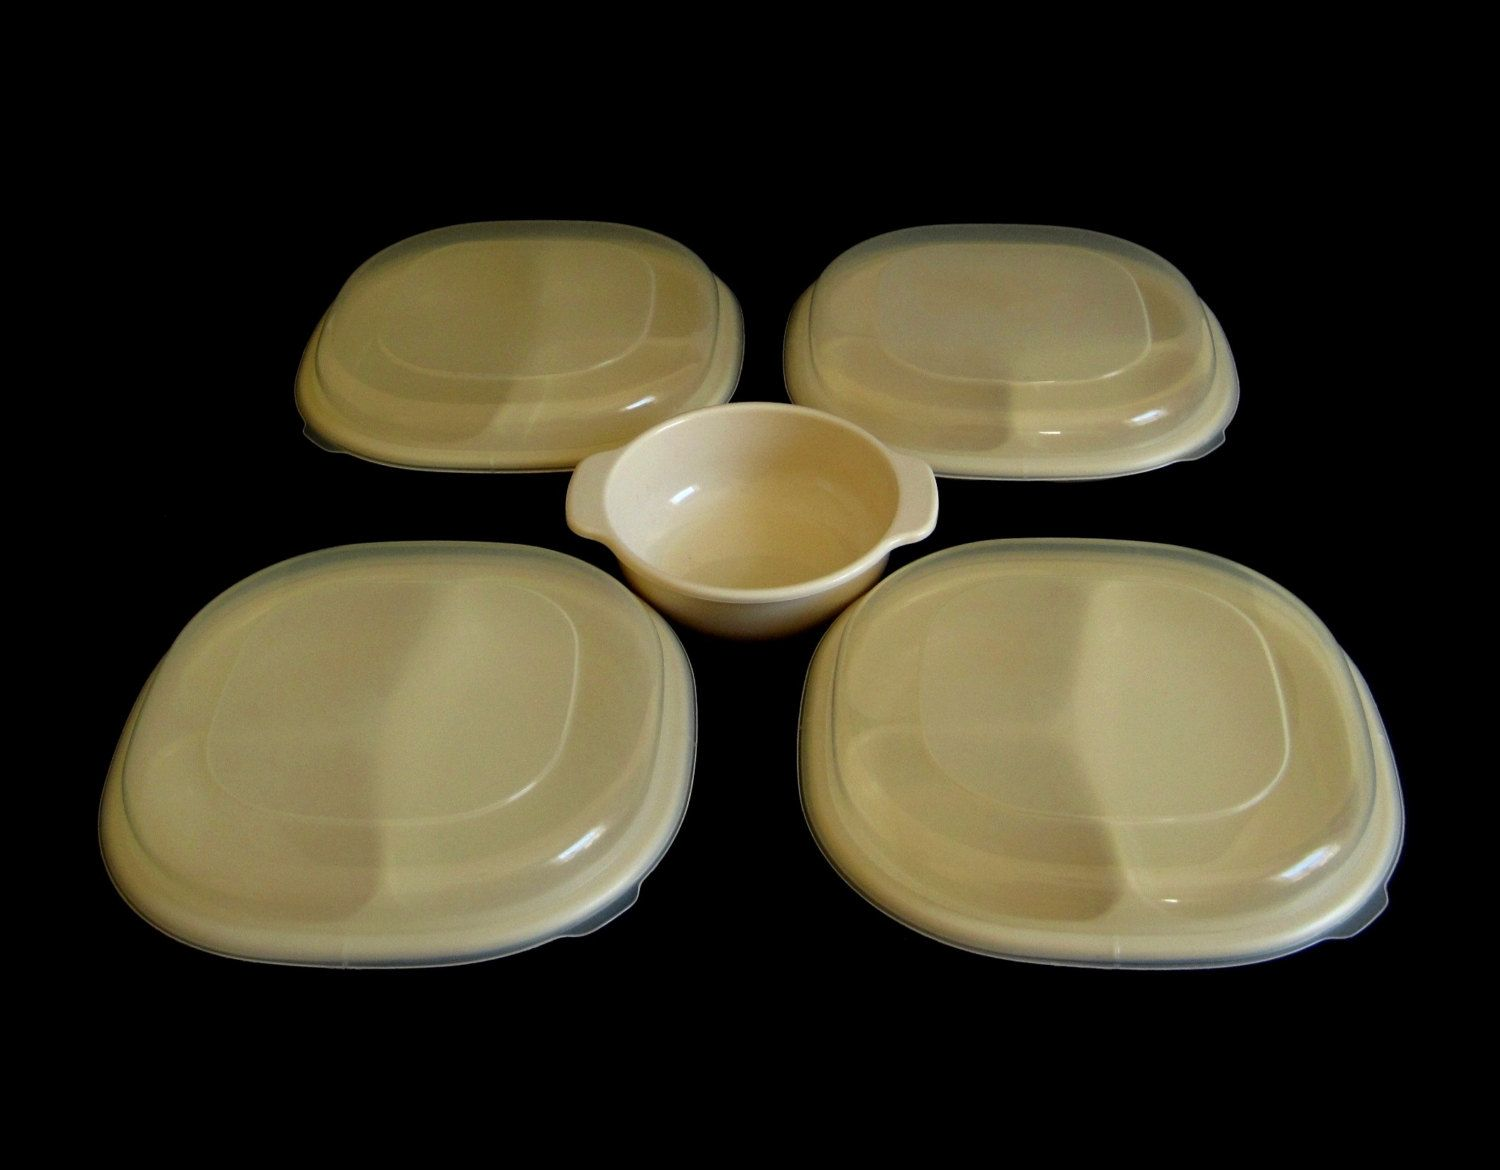 New to LaurasLastDitch on Etsy Rubbermaid Microwave Heatables Divided Plates 0059 Lids 0060 Bowl 0065 Ivory Plastic (19.99 USD) & New to LaurasLastDitch on Etsy: Rubbermaid Microwave Heatables ...